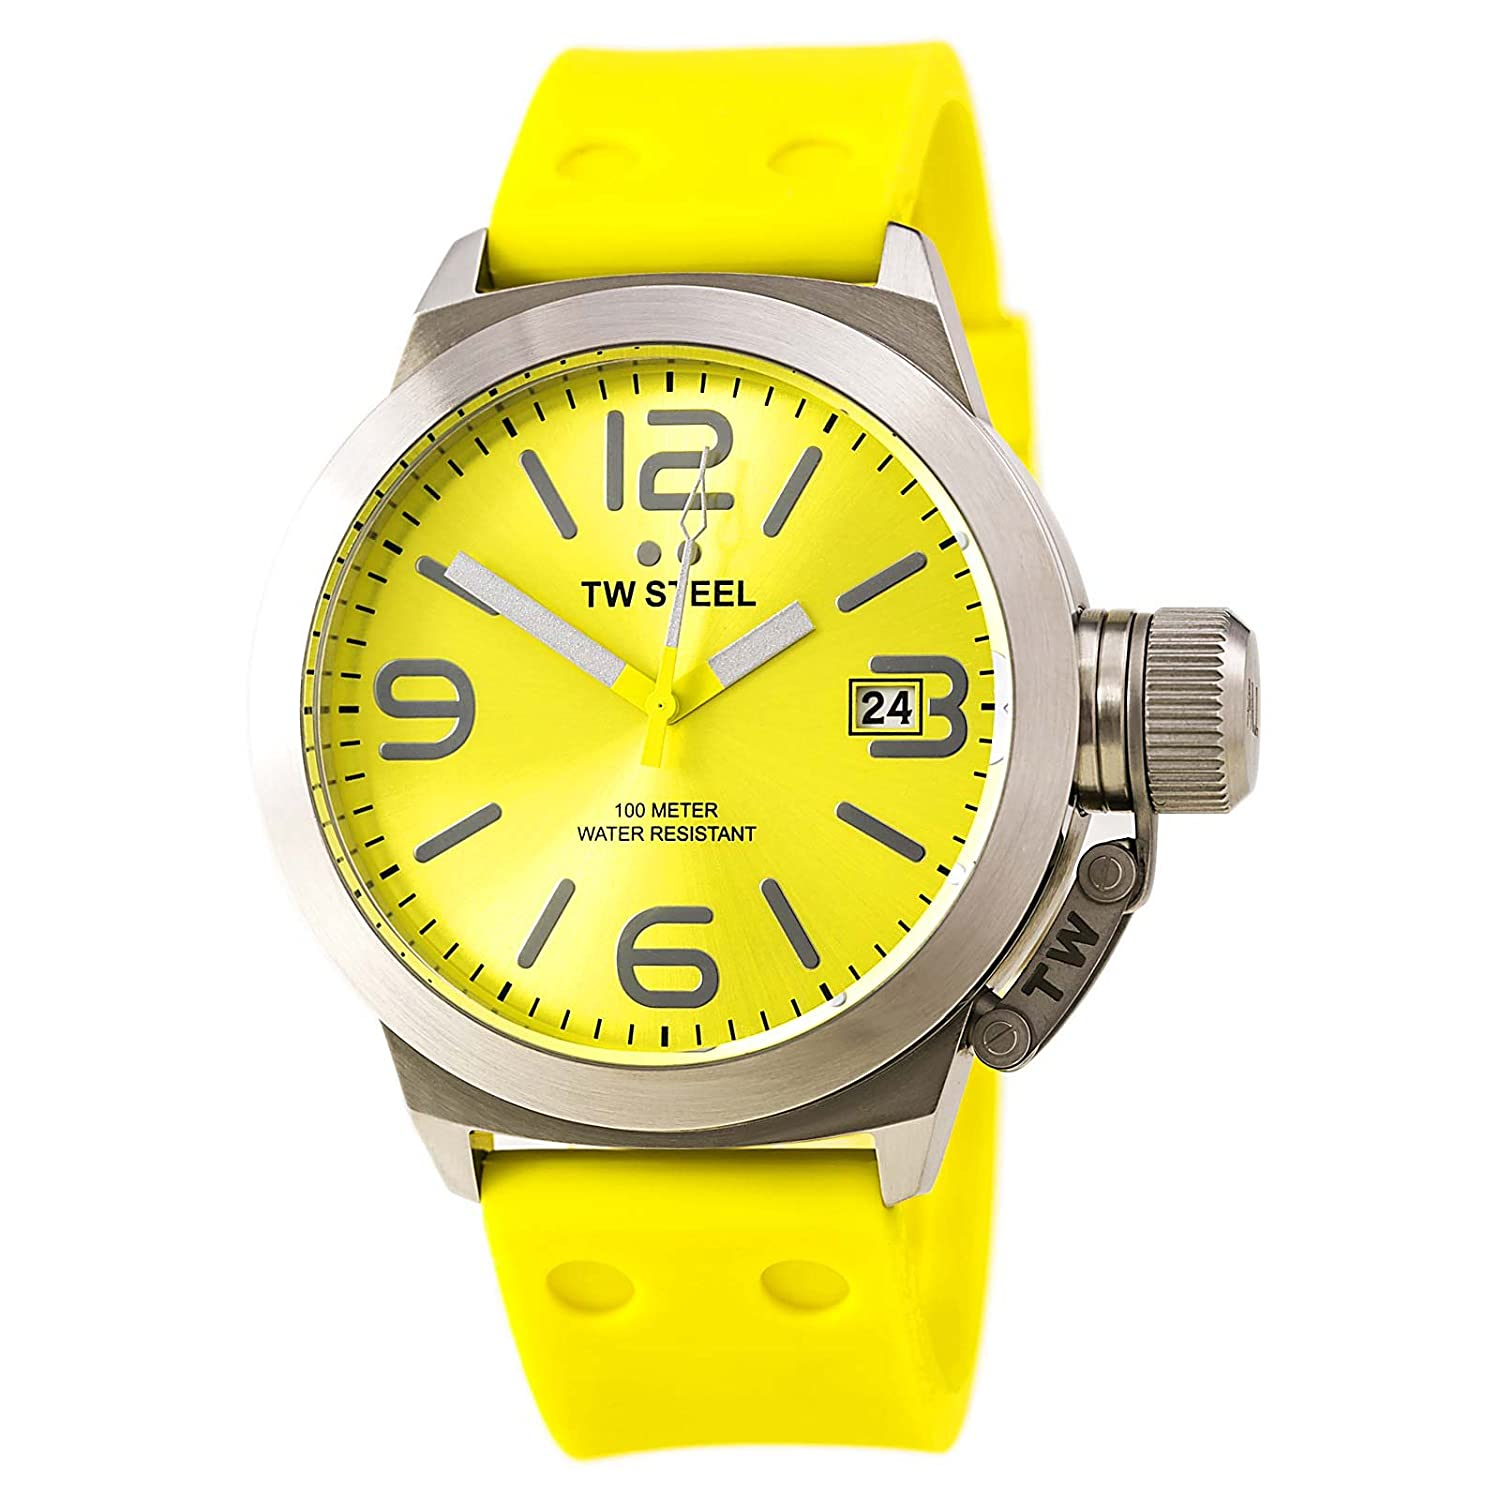 buy dial images from to watch delivery swiss uk victorinox best online watches diver yellow free available i with army professional on pinterest